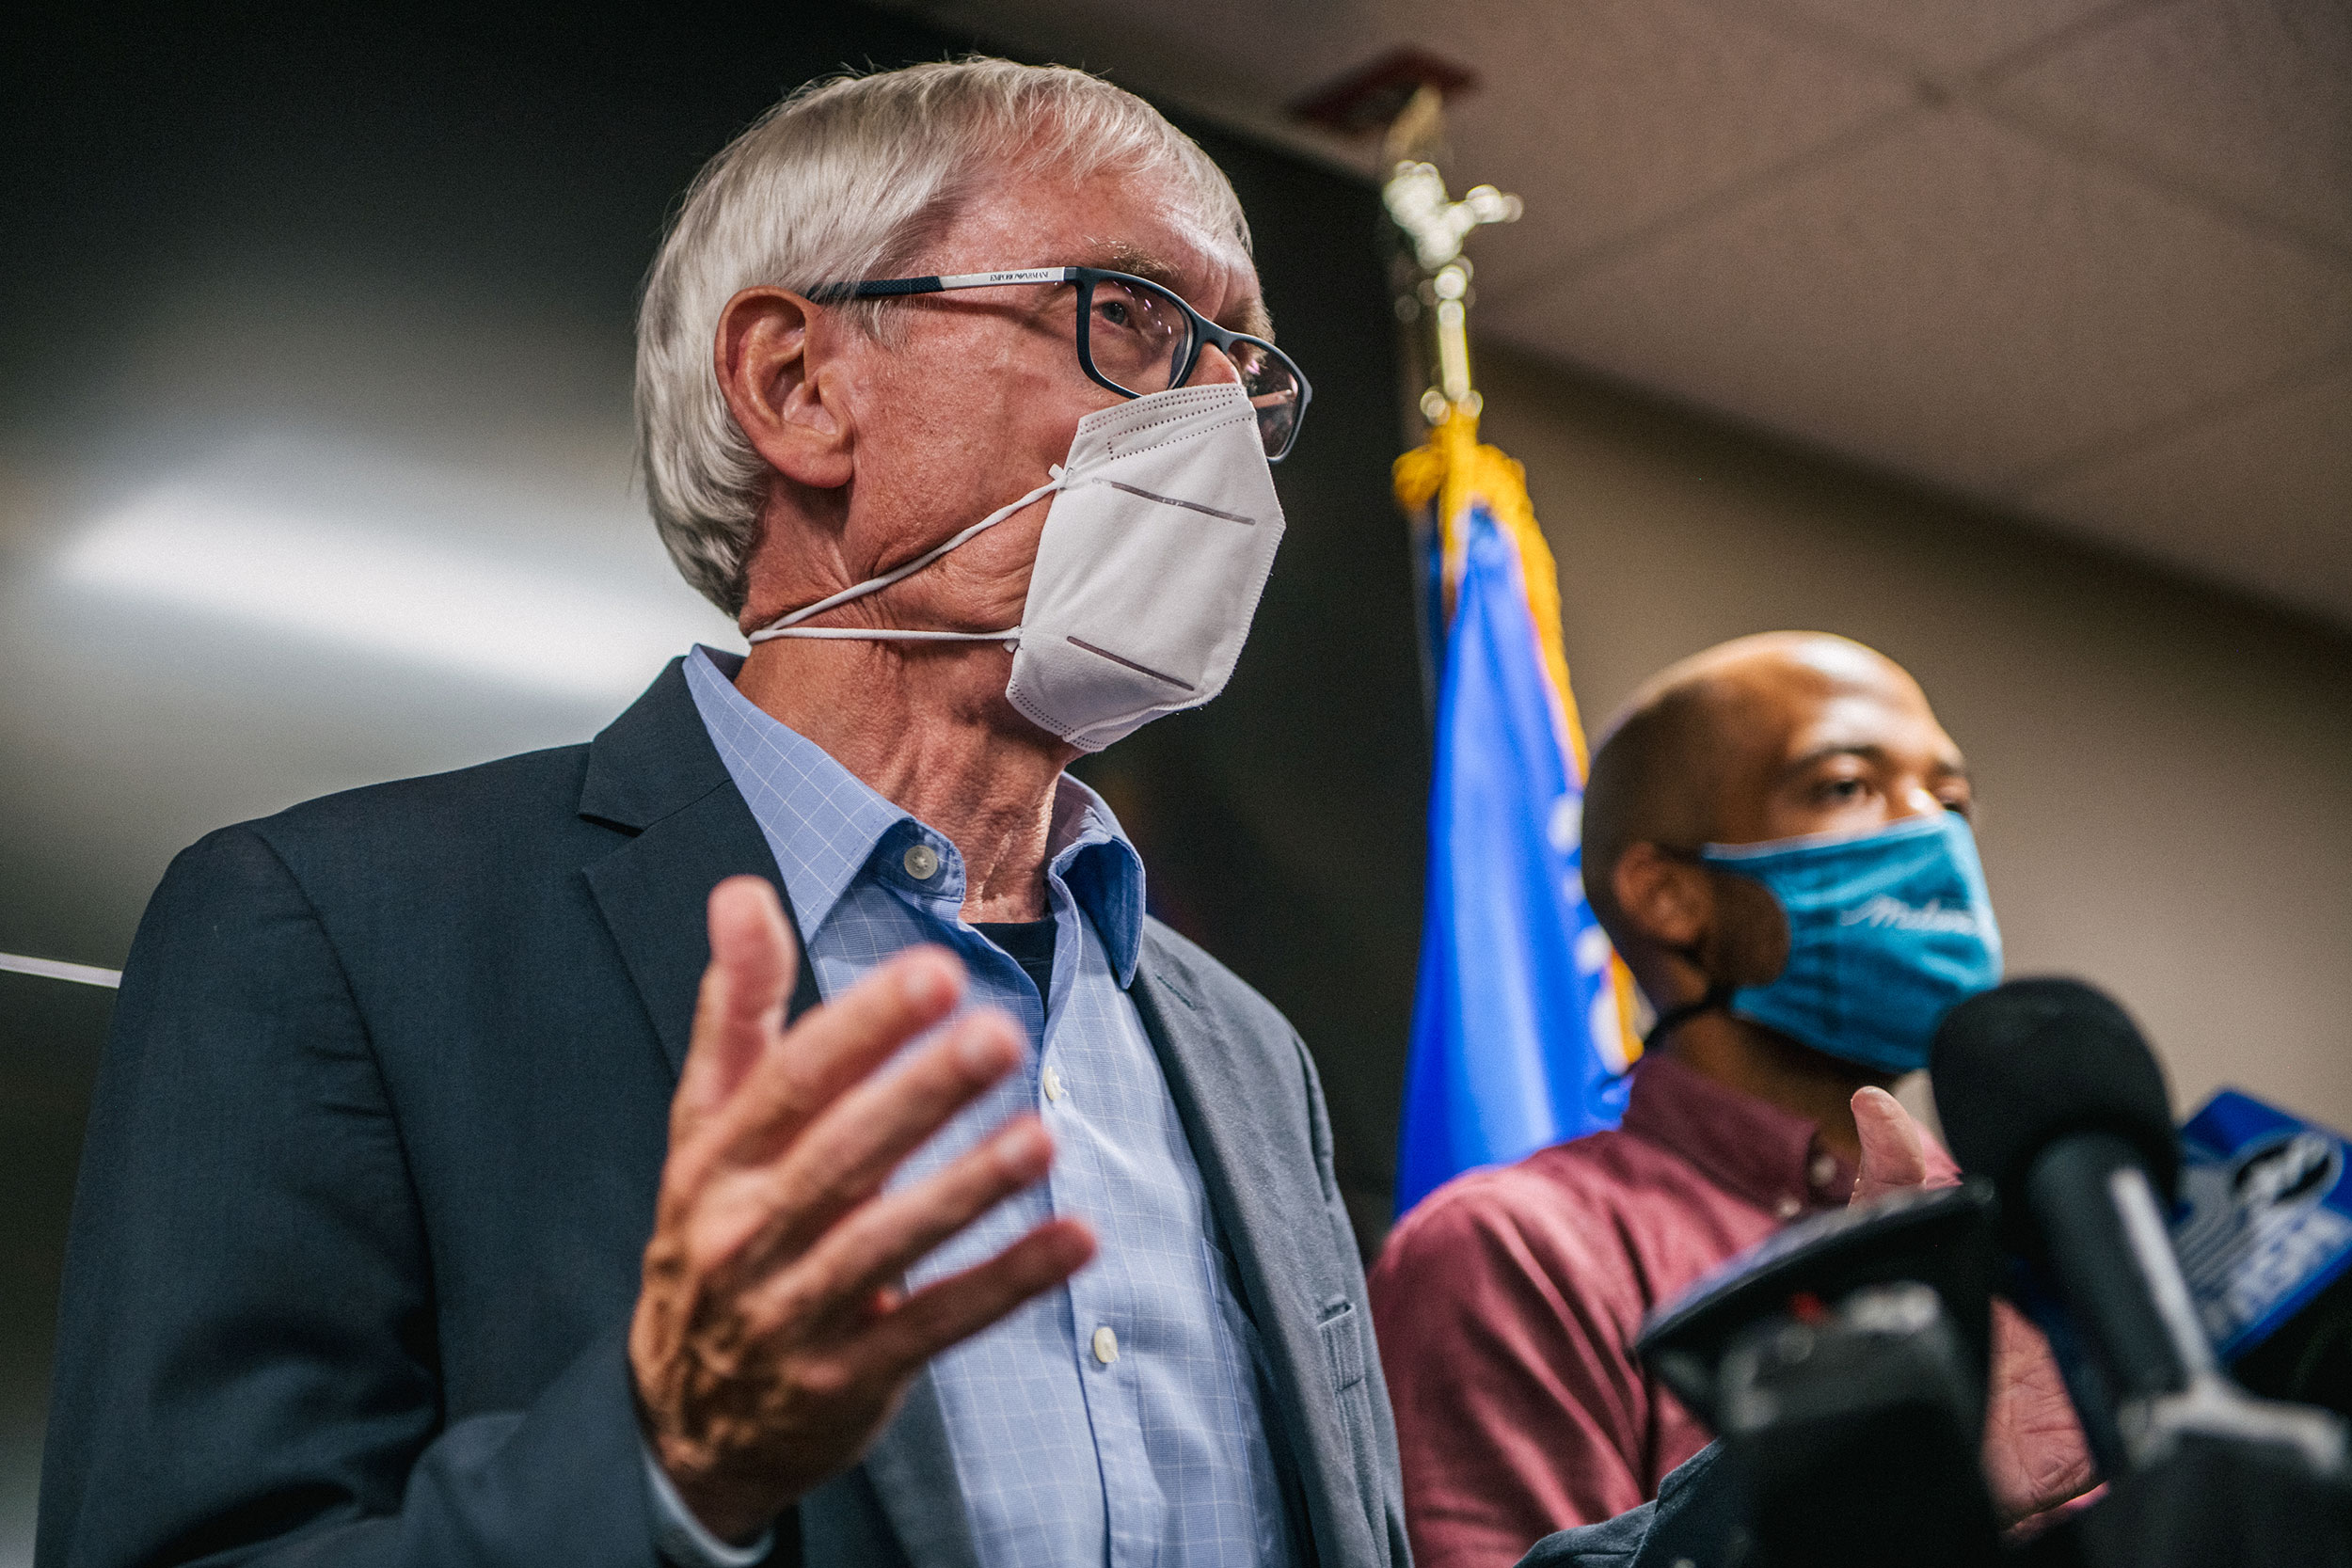 Wisconsin Gov. Tony Evers speaks at a news conference on August 27 in Kenosha, Wisconsin.